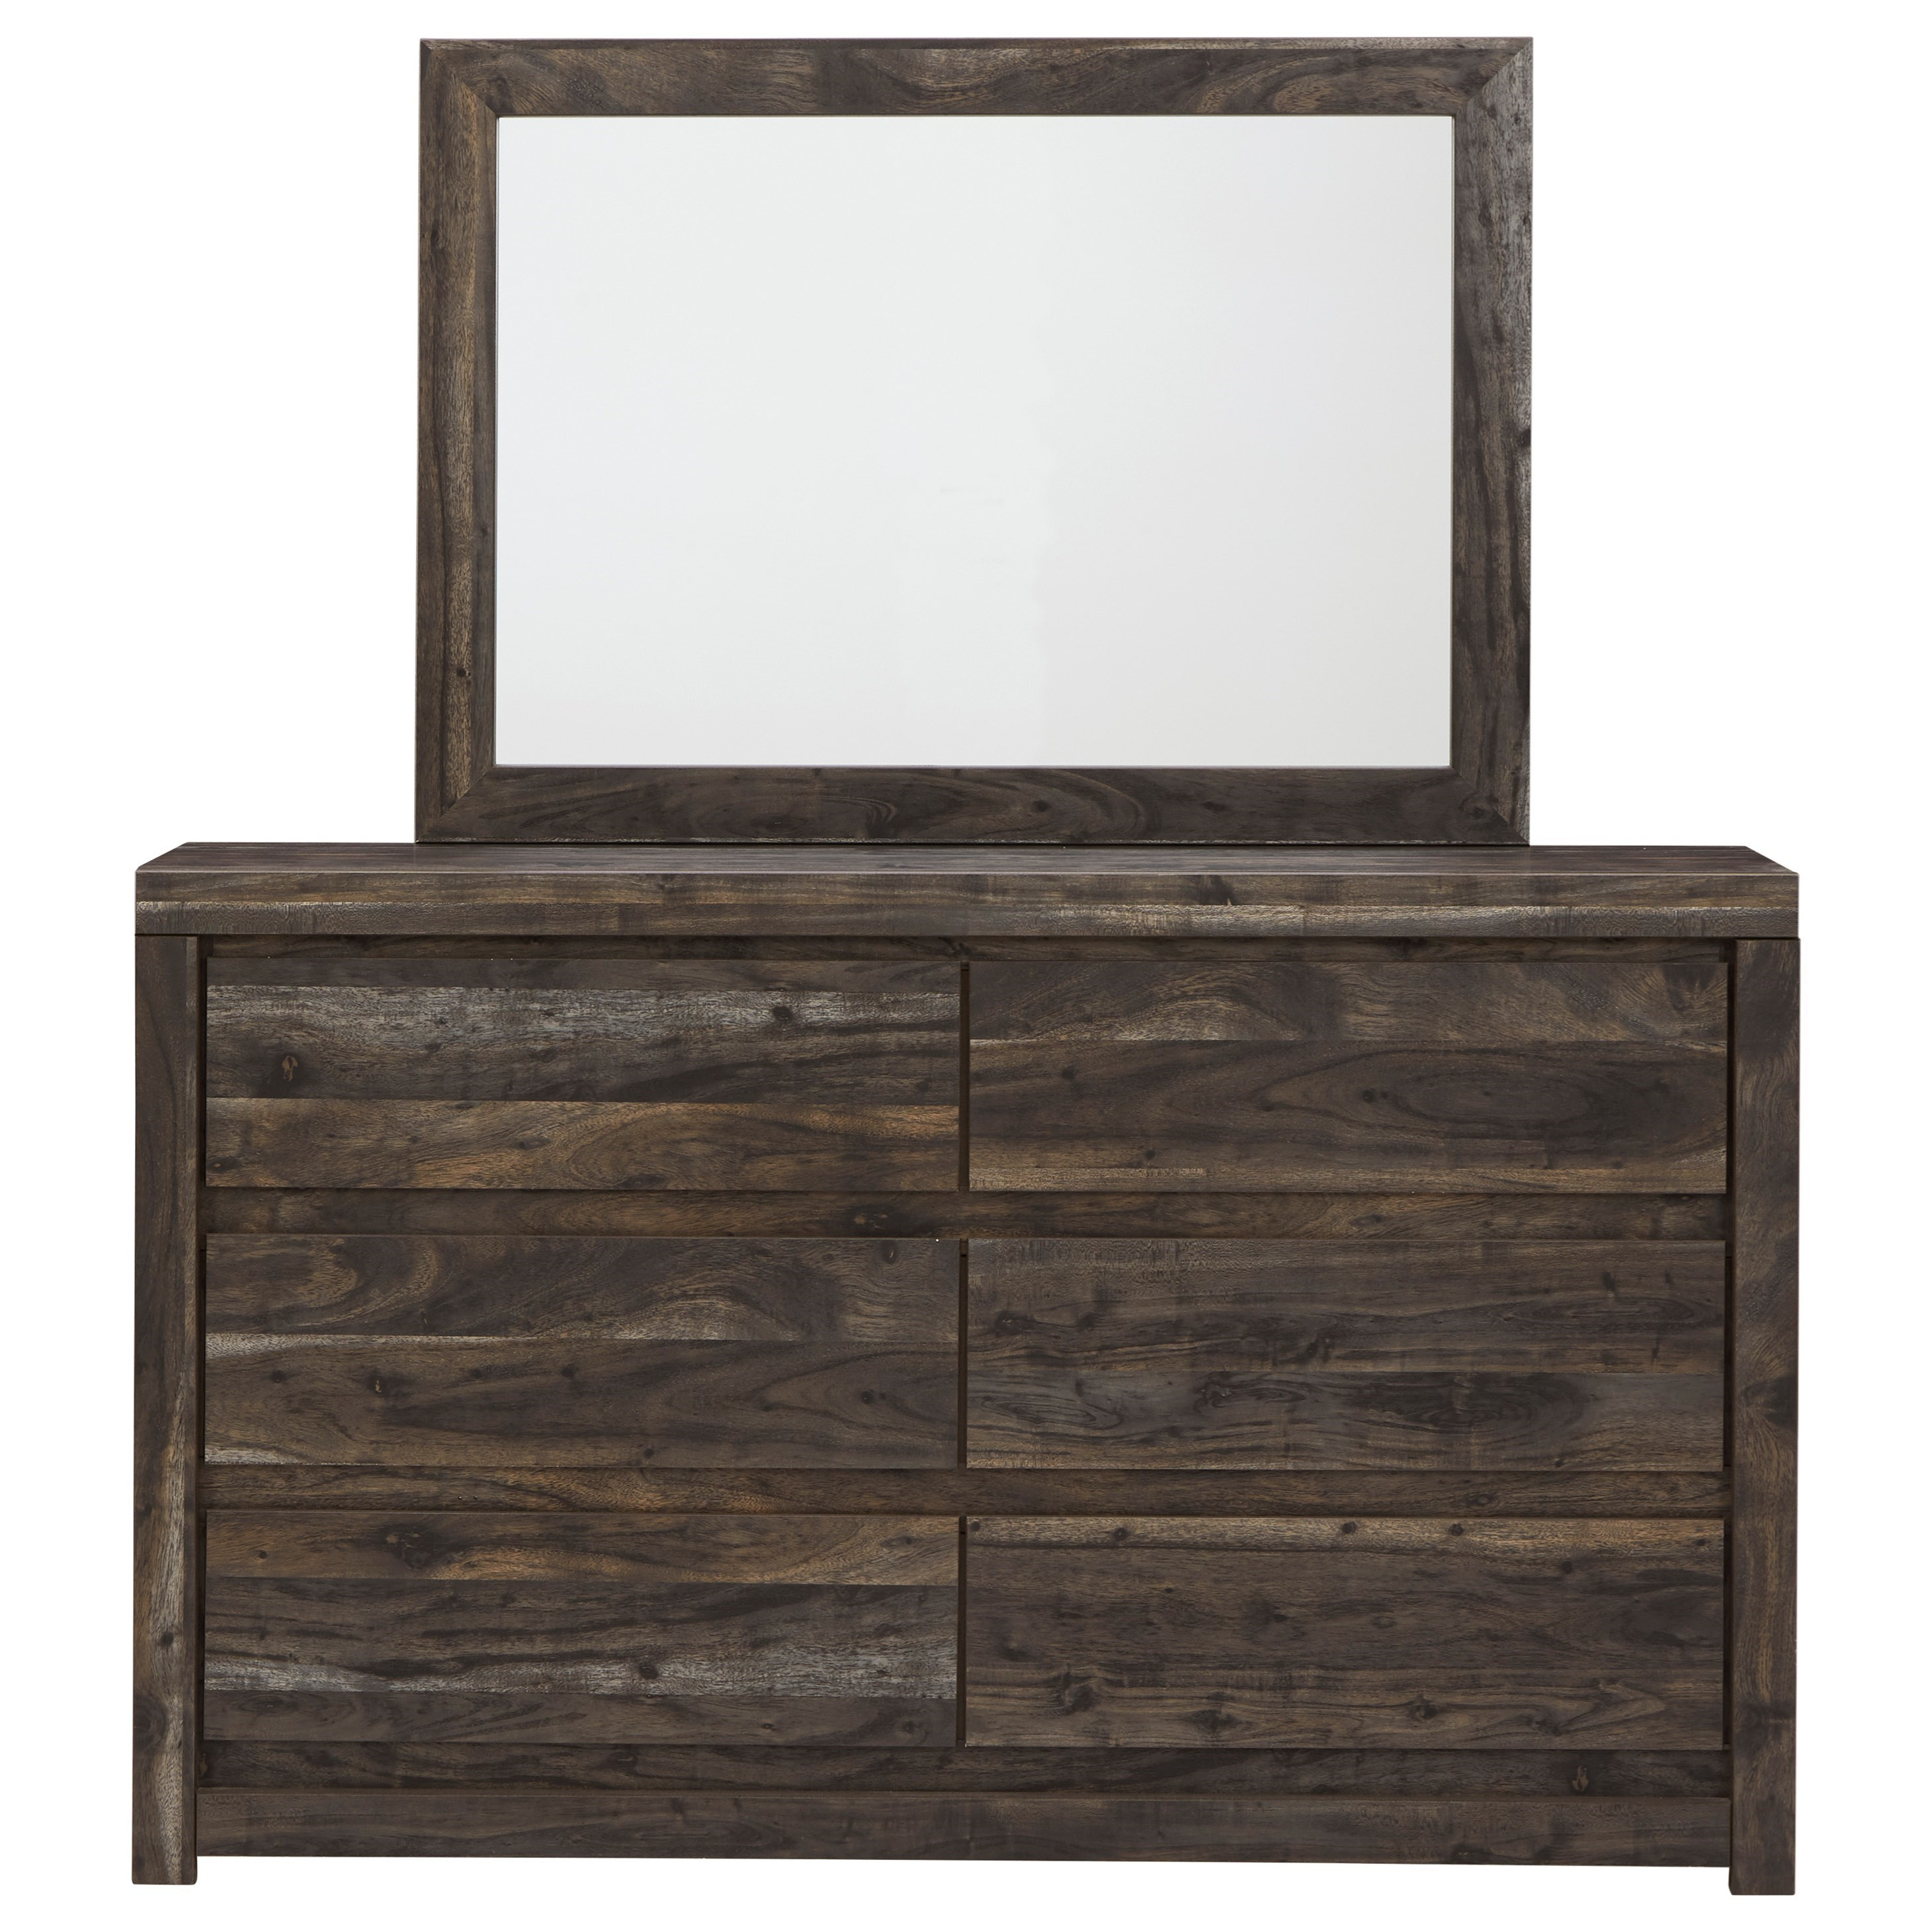 Vay Bay Dresser & Mirror by Benchcraft at Value City Furniture